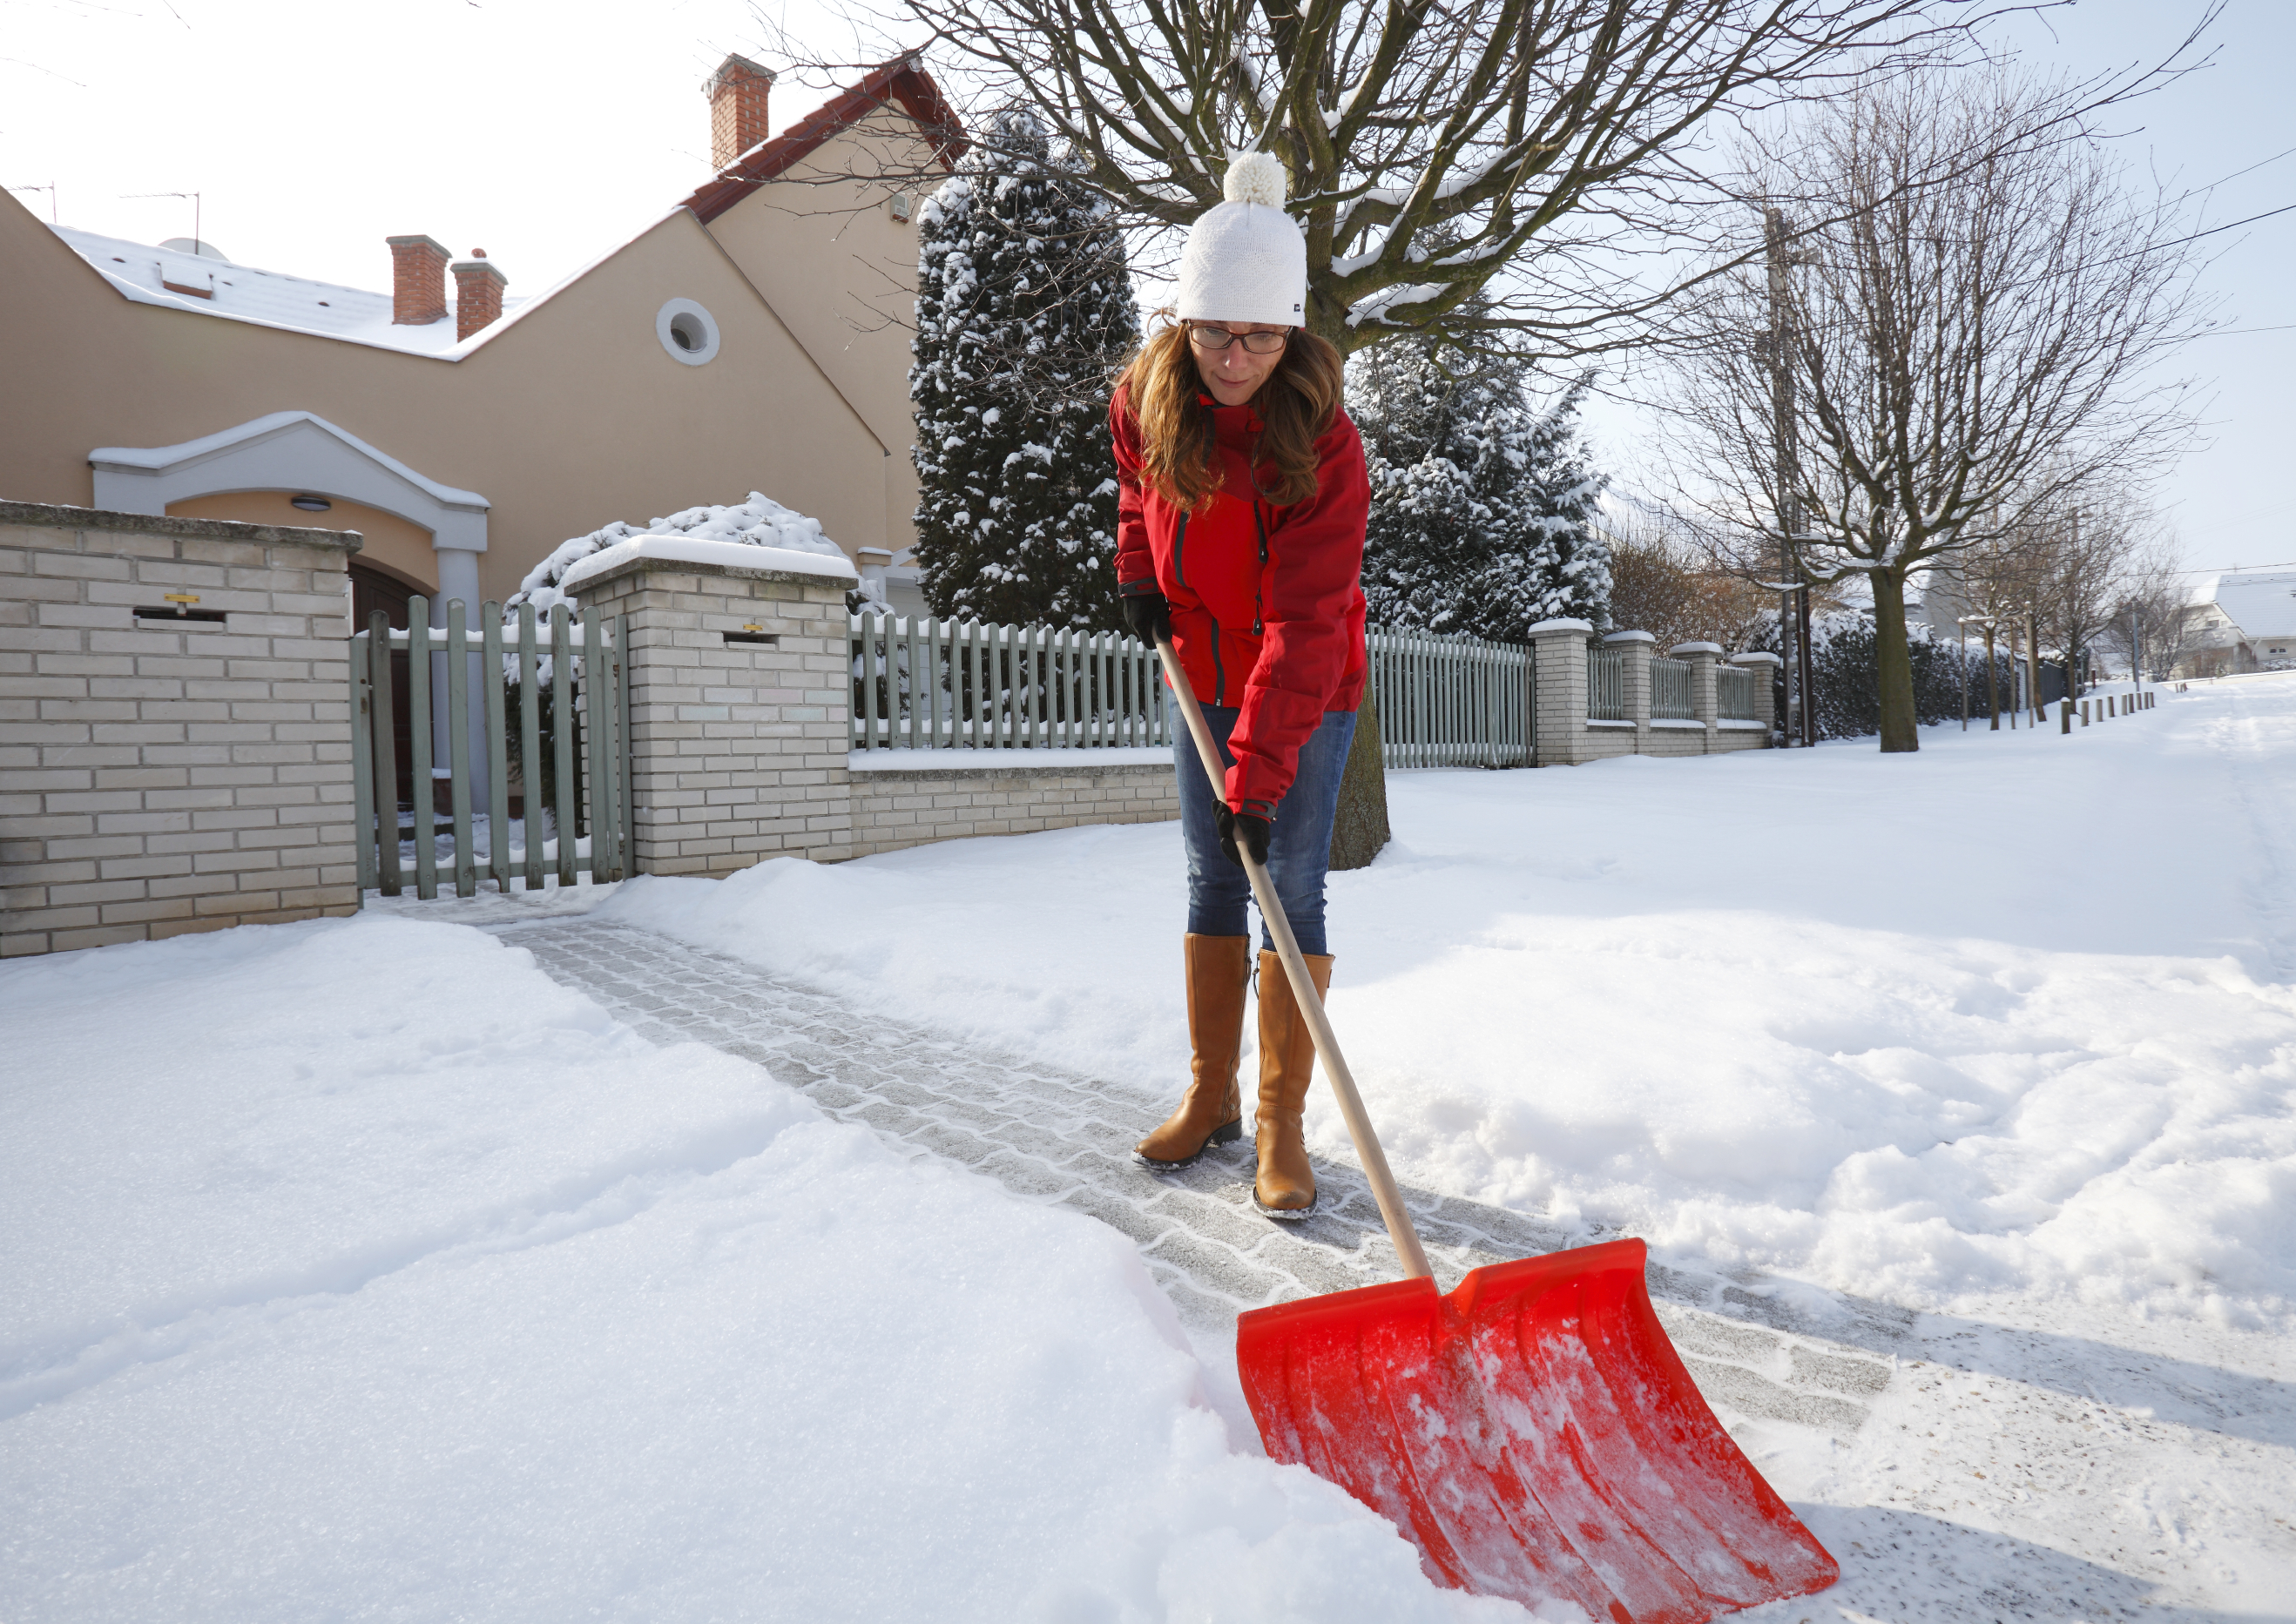 Woman shoveling and removing snow in front of her house in the suburb